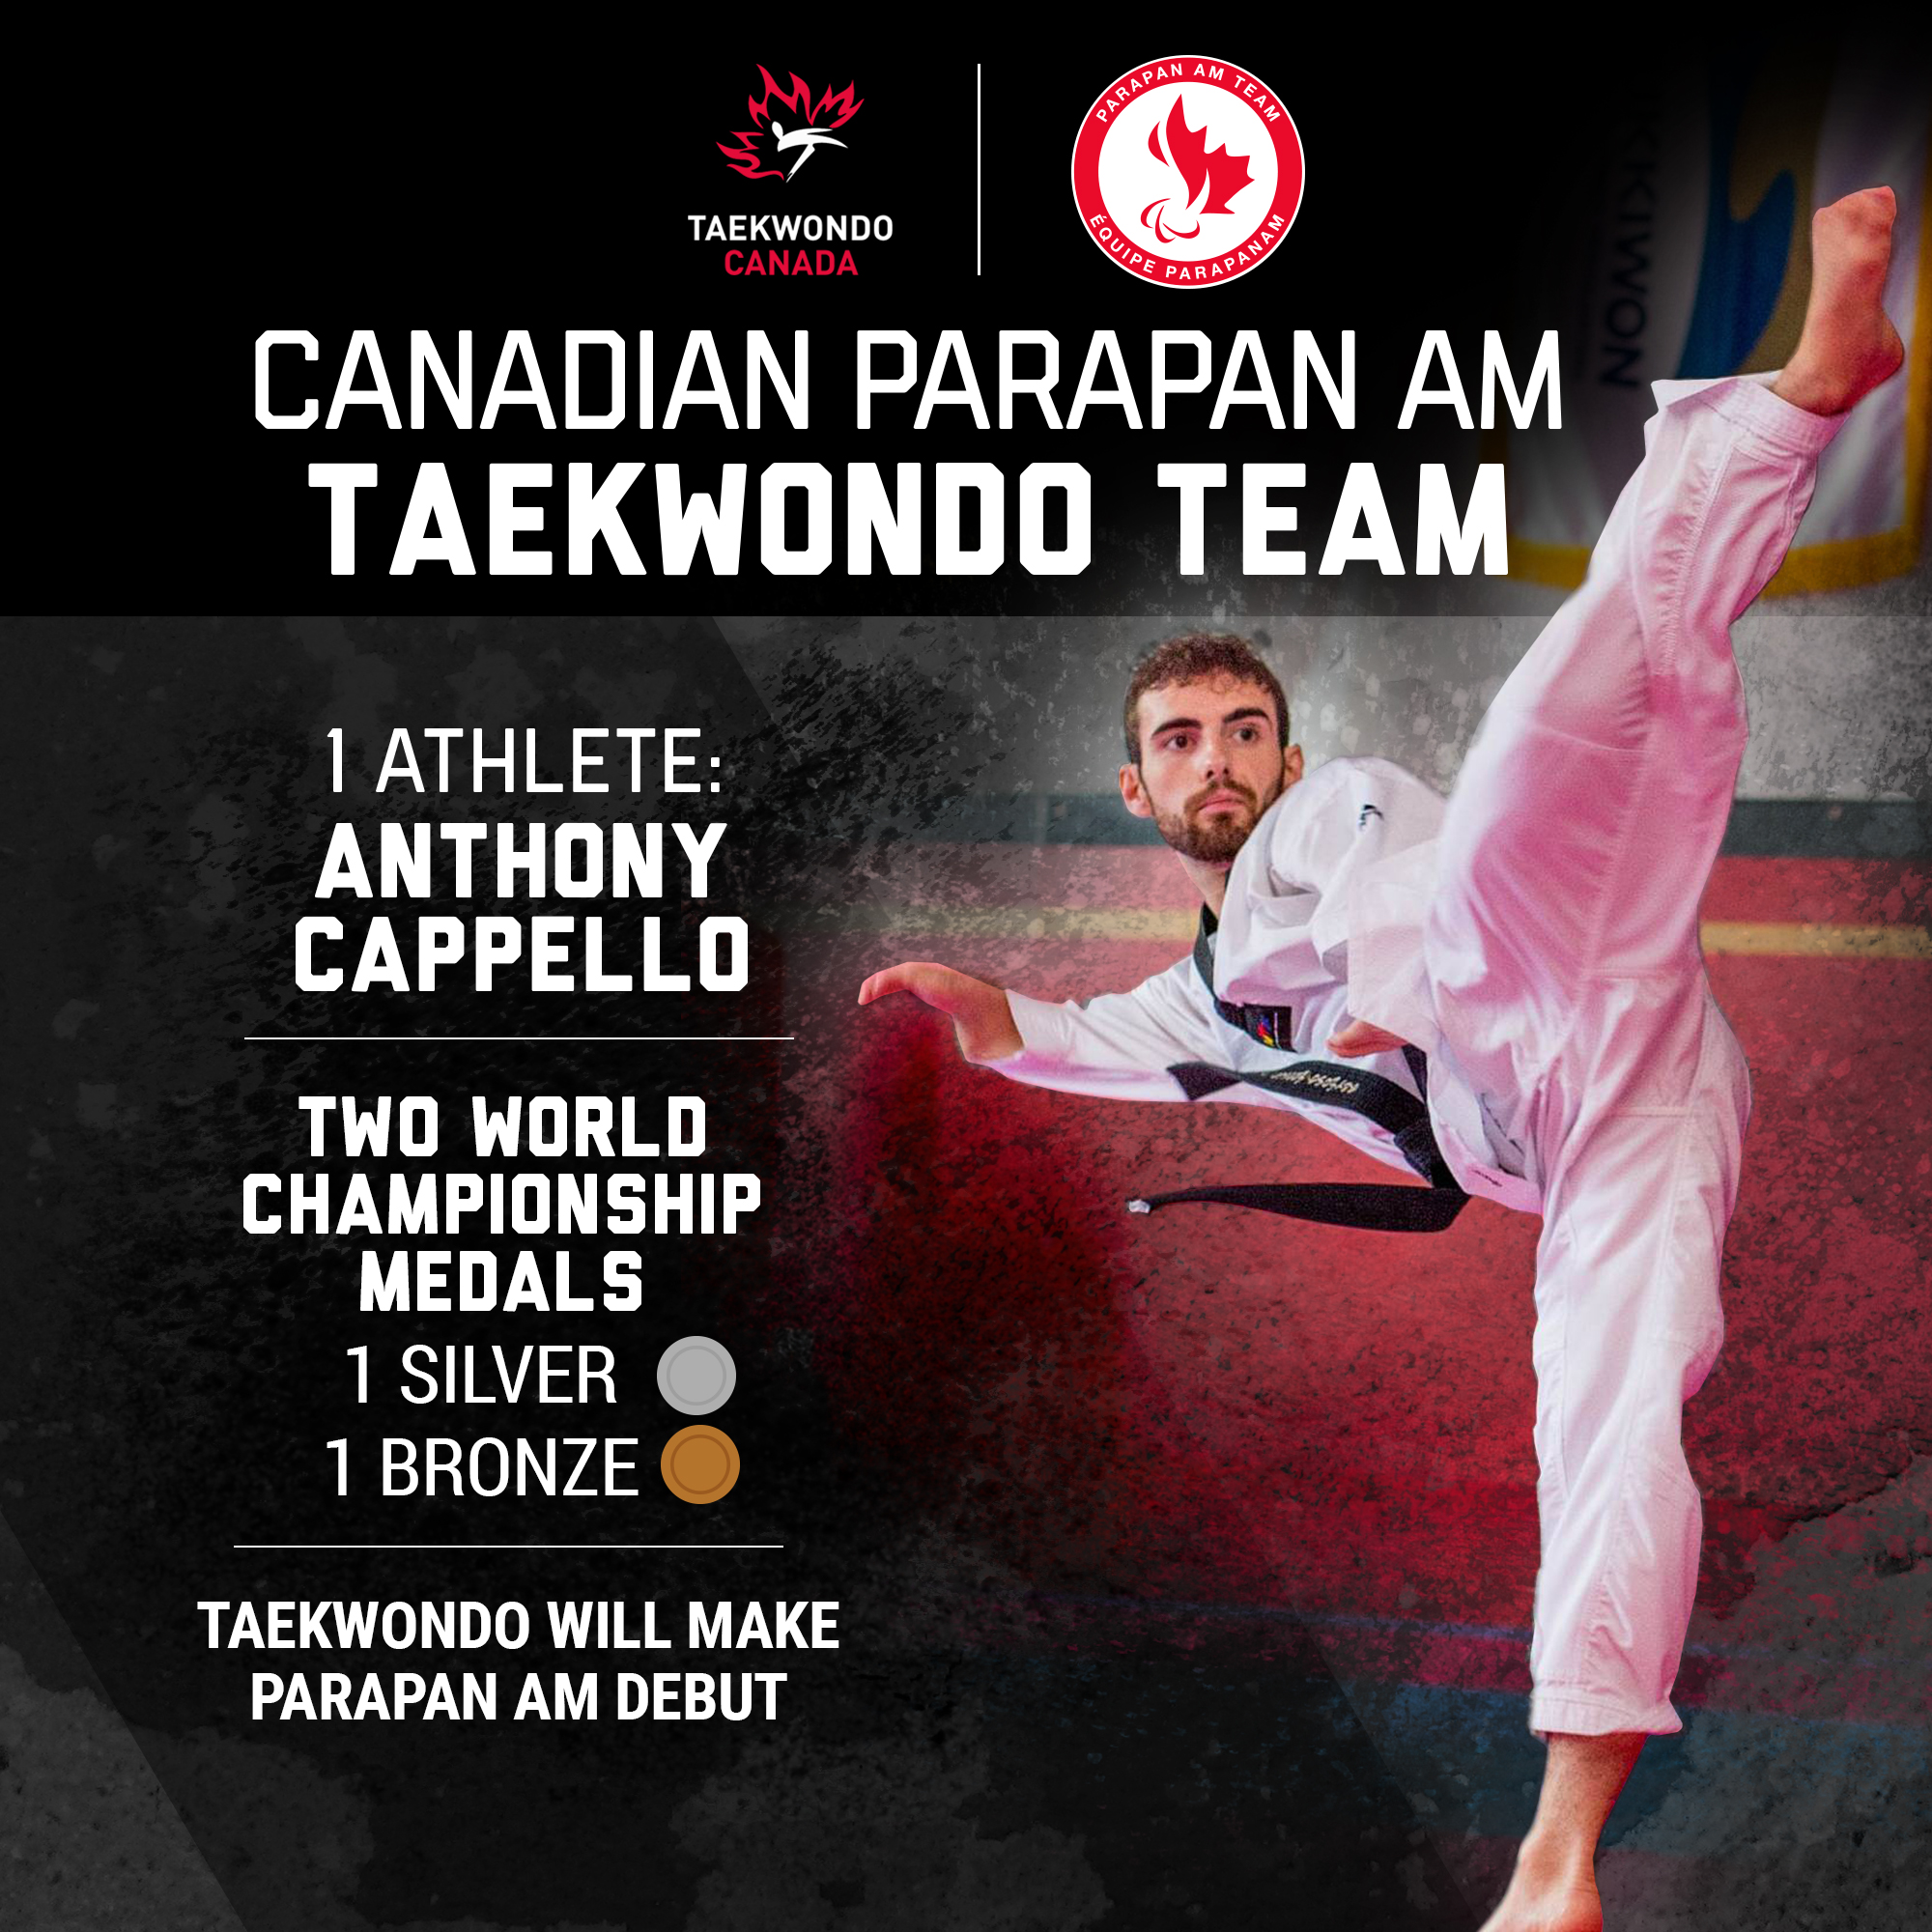 A graphic showing Anthony Cappello's silver and bronze medal at the world championships.